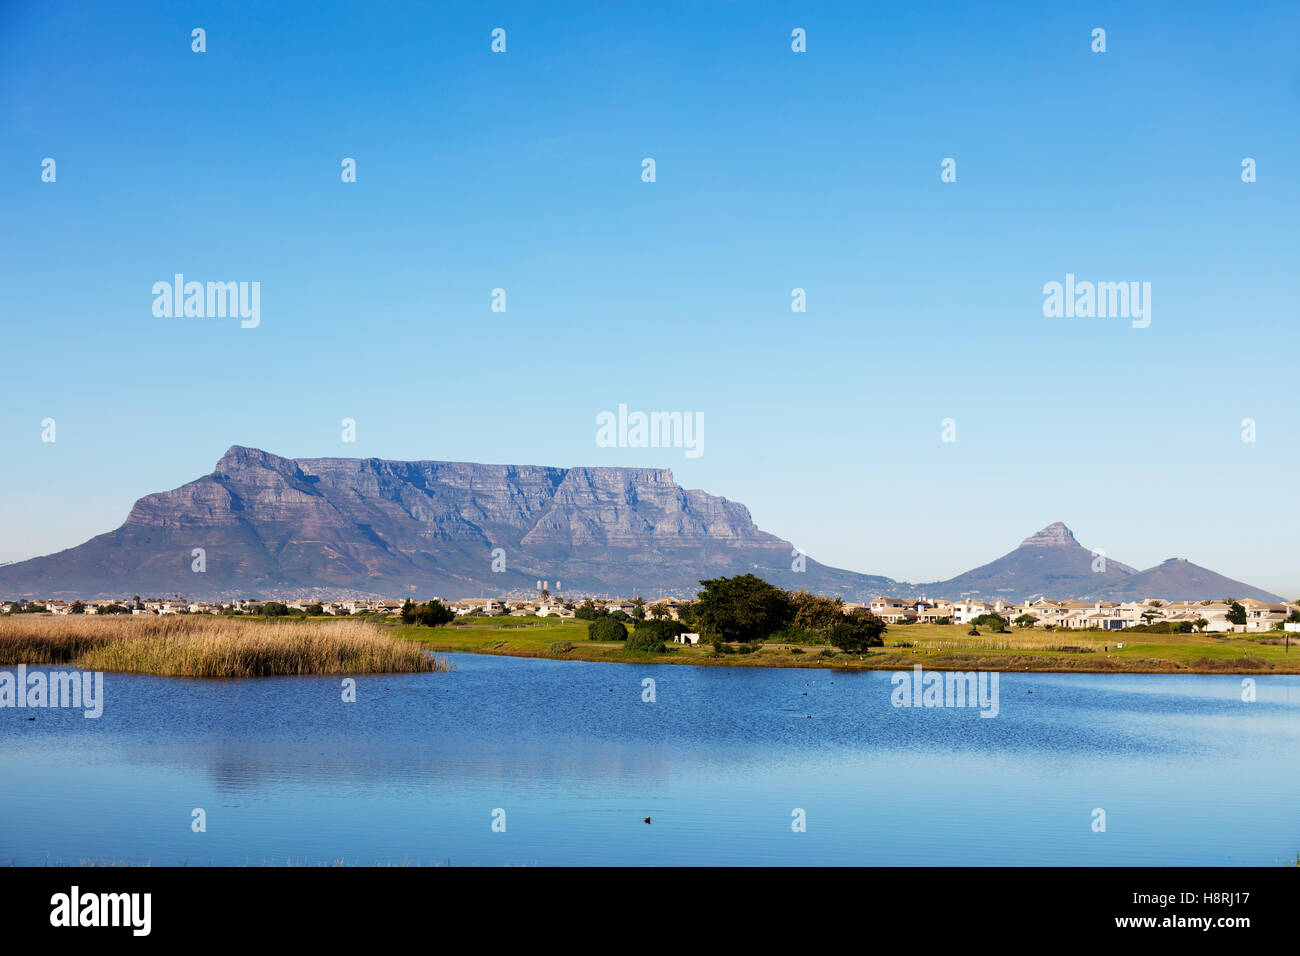 South Africa, Western Cape, Cape Town, Table Mountain and Woodbridge Island lighthouse - Stock Image